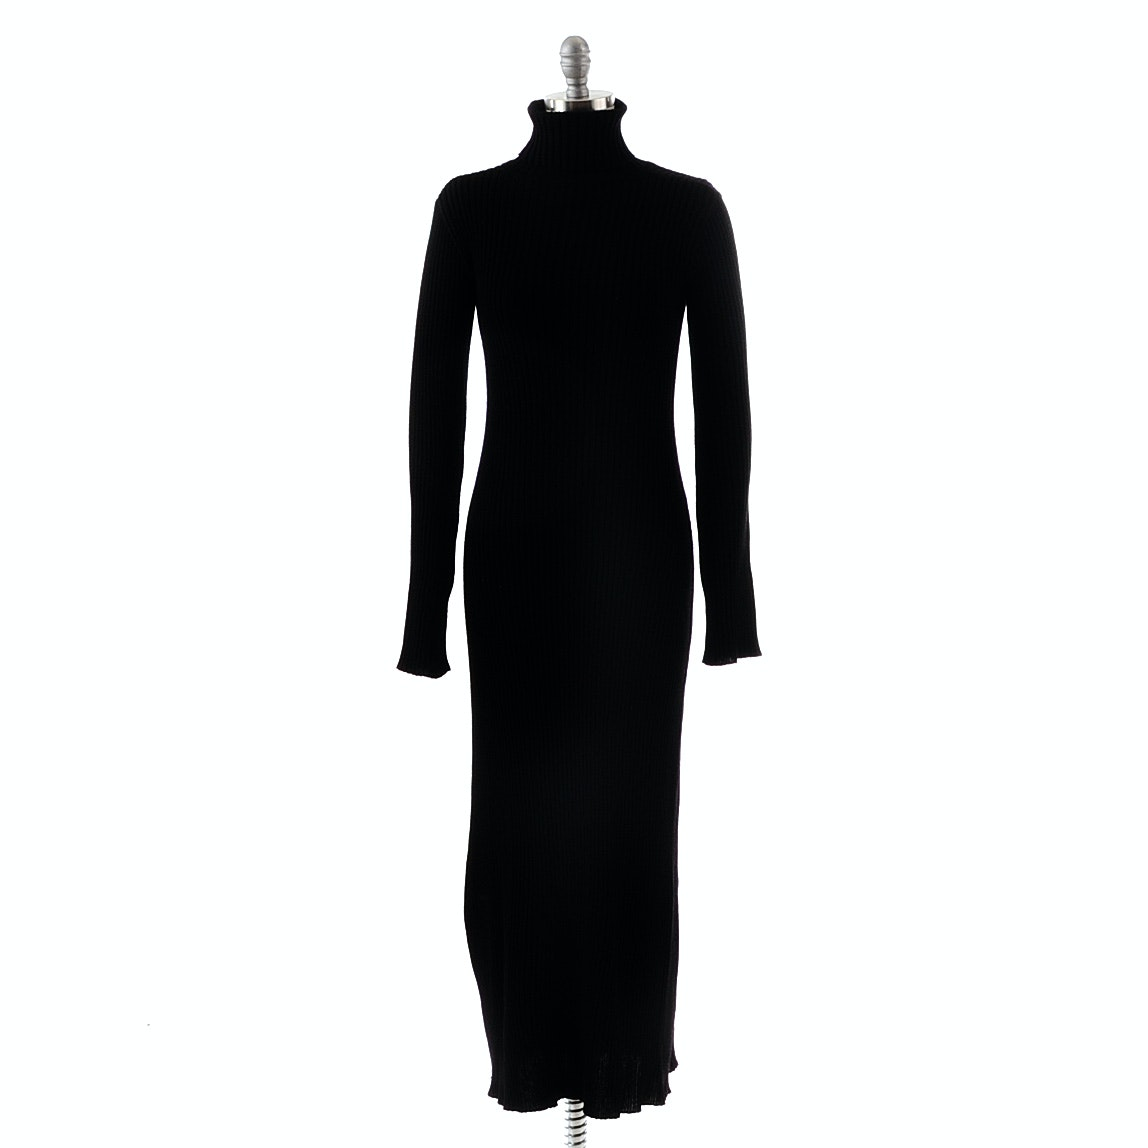 Donna Karan of New York Black Turtleneck Ribbed Wool Dress